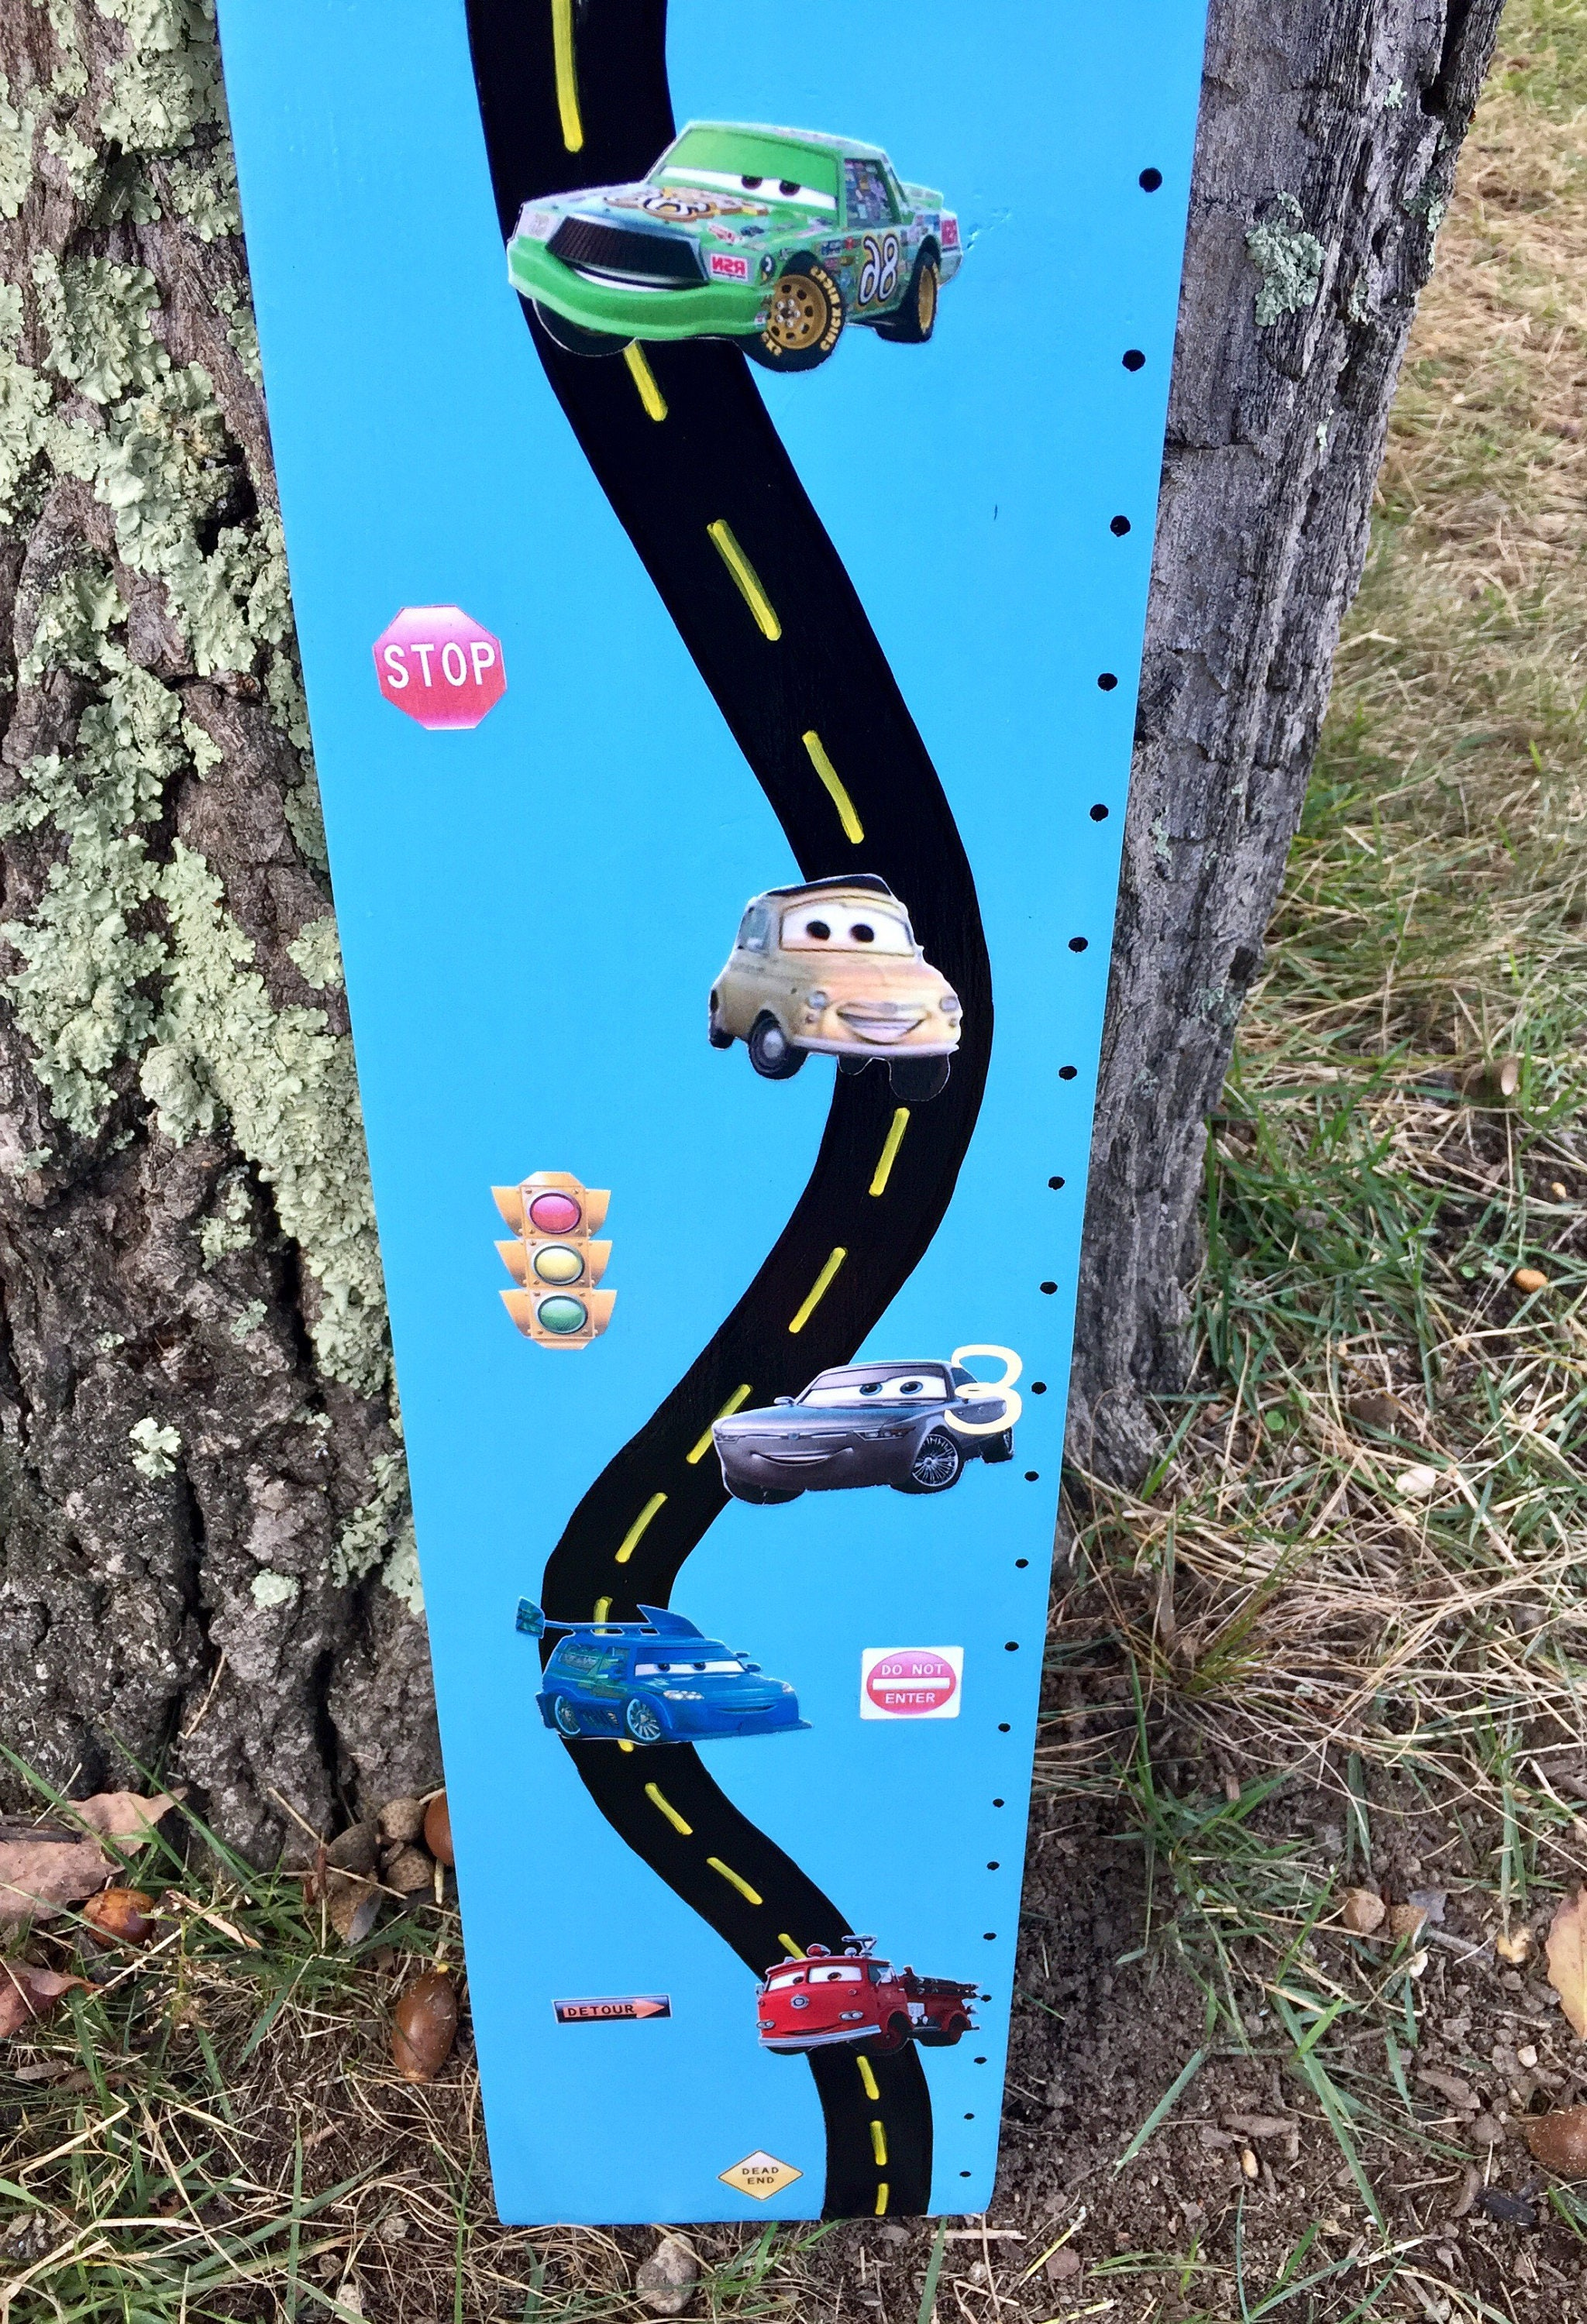 Disney pixar cars themed growth chart from thestarfishwish on etsy disney pixar cars themed growth chart sold by thestarfishwish 5500 nvjuhfo Image collections